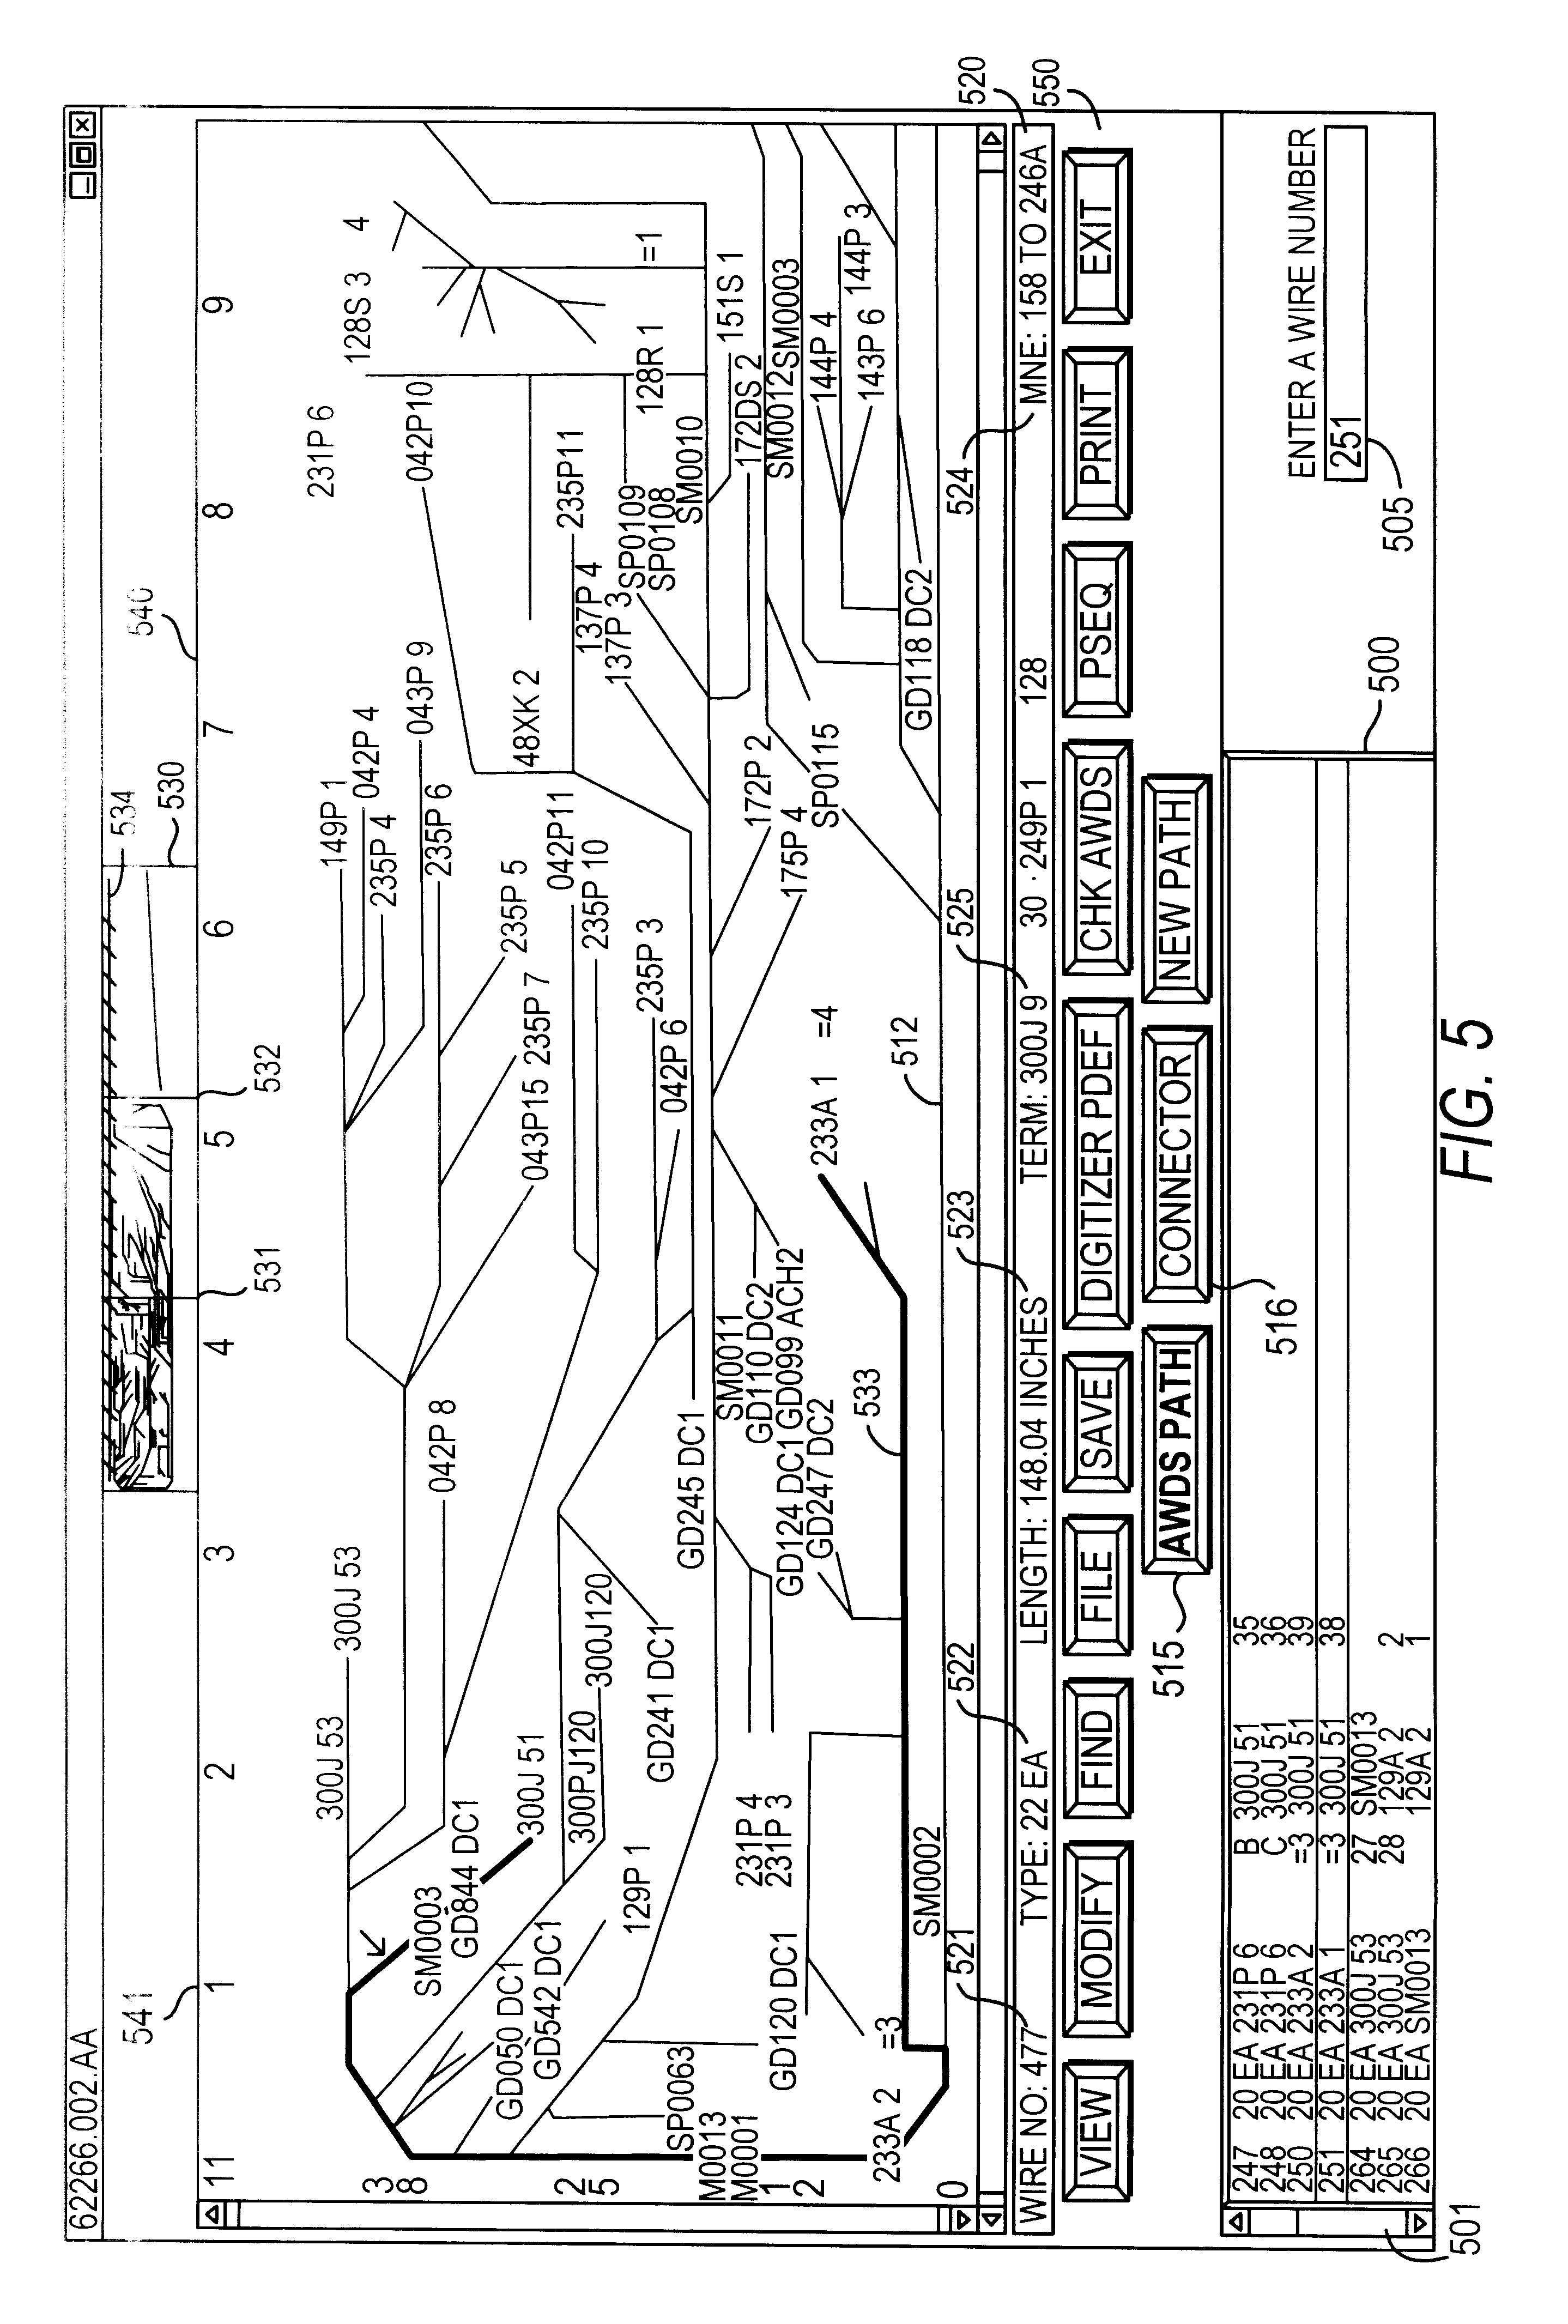 patent us6272387 wire harness system google patents Boeing Wire Harness Boeing Wire Harness #88 boeing wire harness